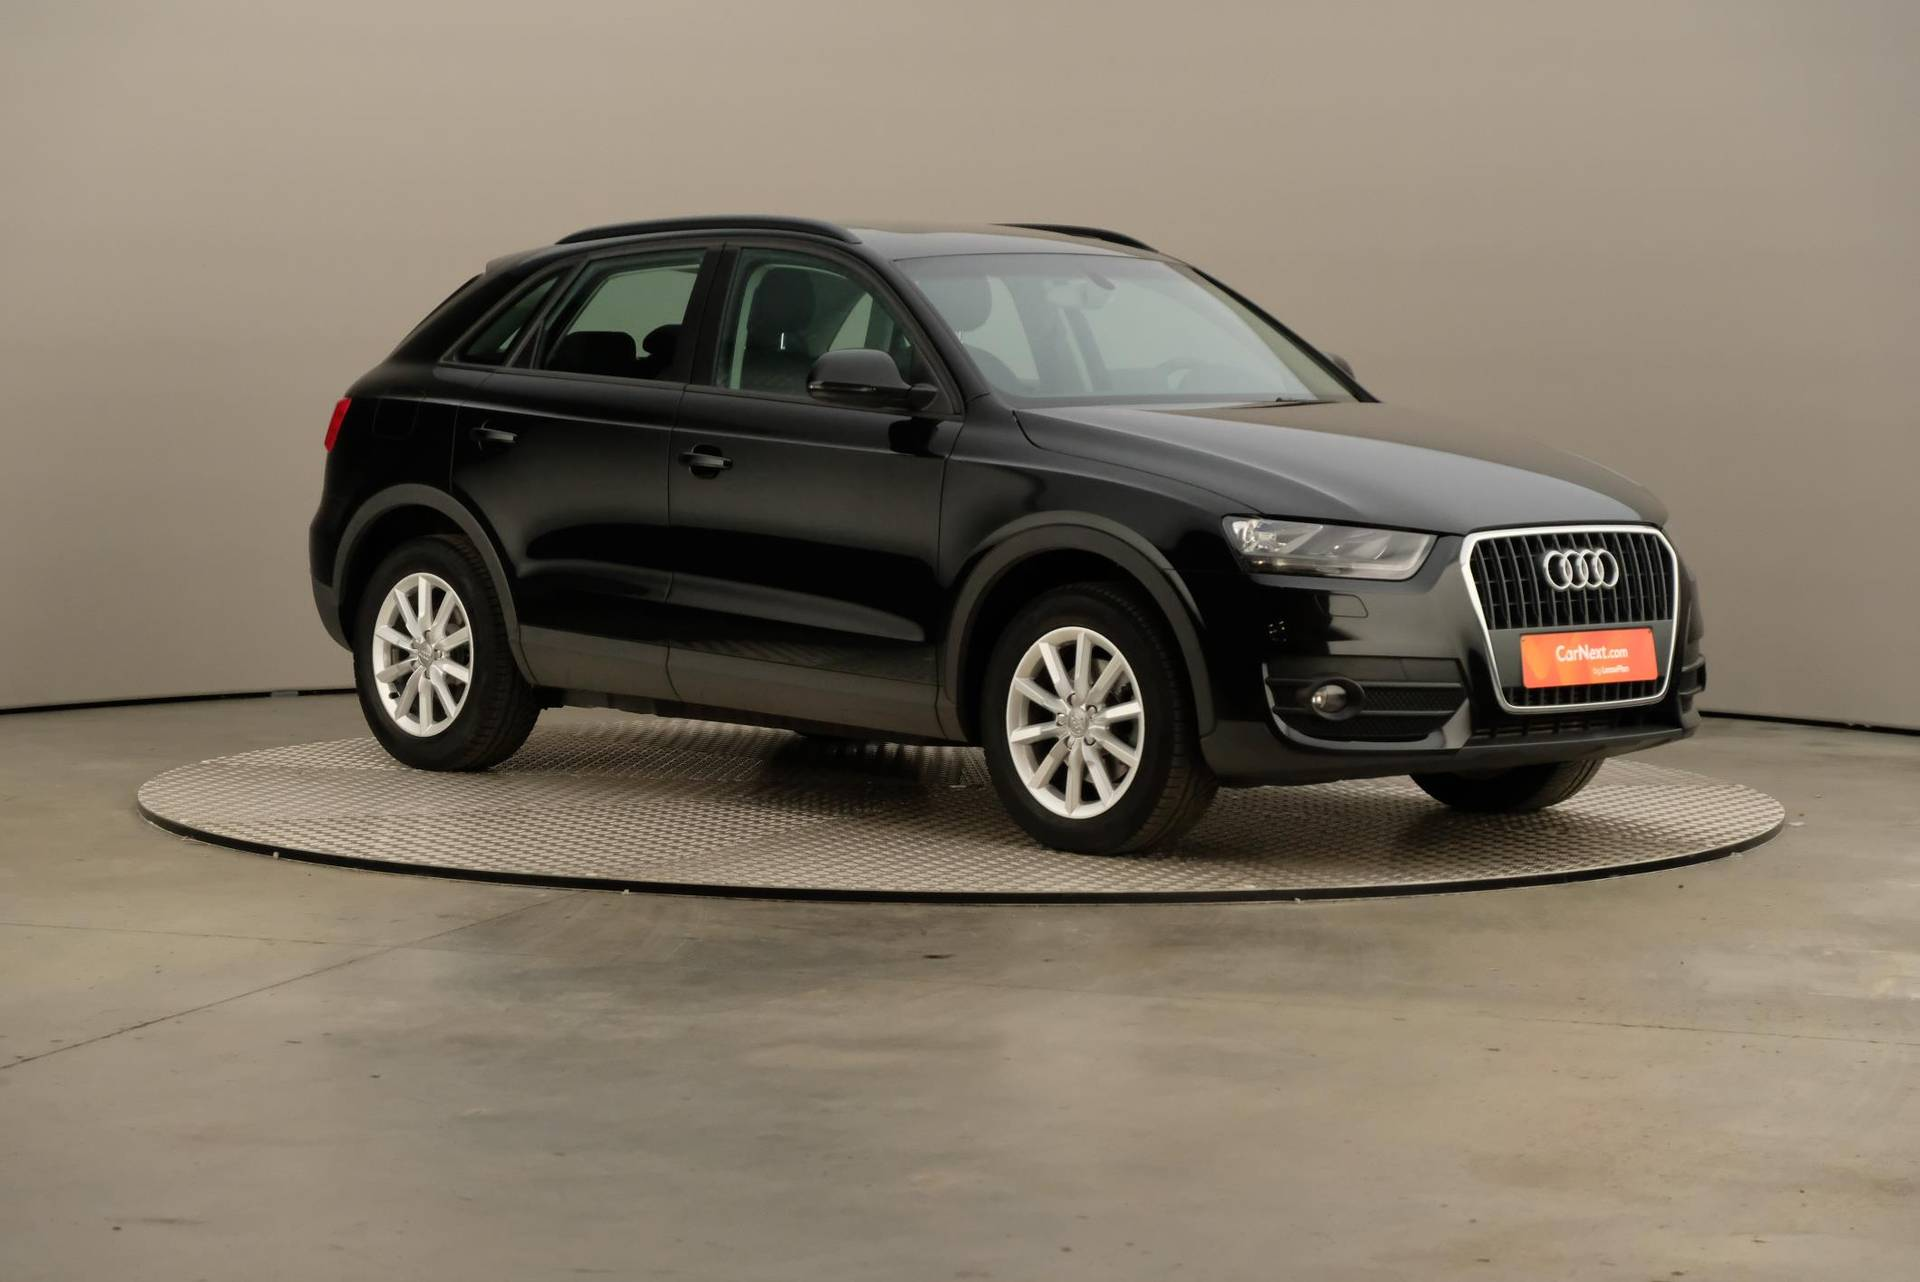 Audi Q3 2.0 TDI Adventure Plus S&S PANO MP3 BT GPS, 360-image27